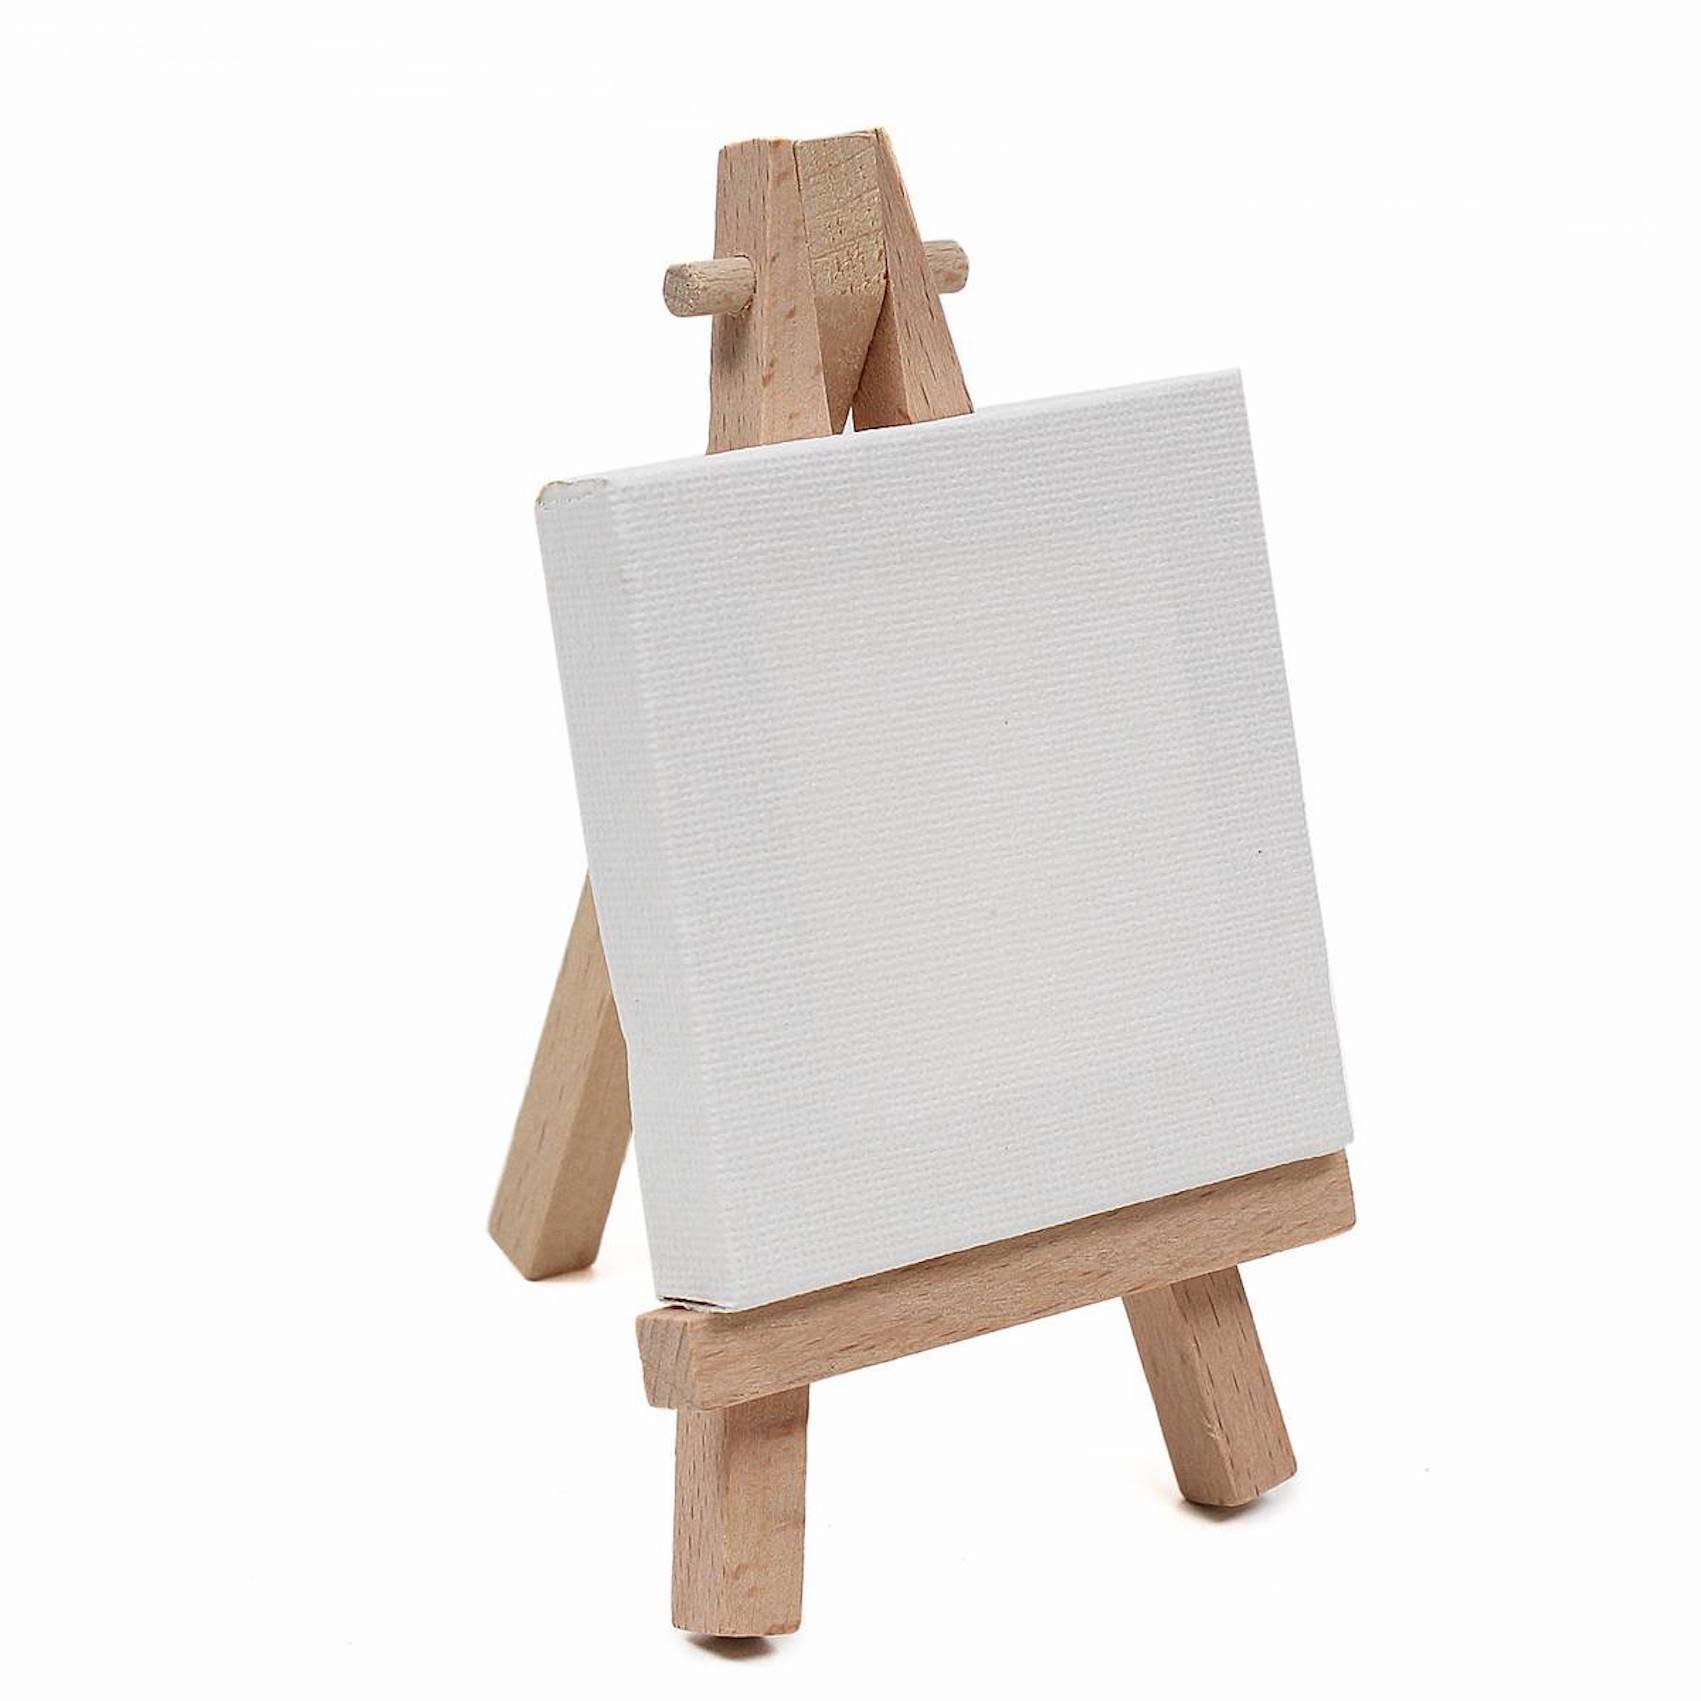 24 sets Mini Display Easel with Canvas 7x5 cm Wedding Table Numbers Painting Hobby Wooden Easel for Drawing DIY Party Gift Decoration